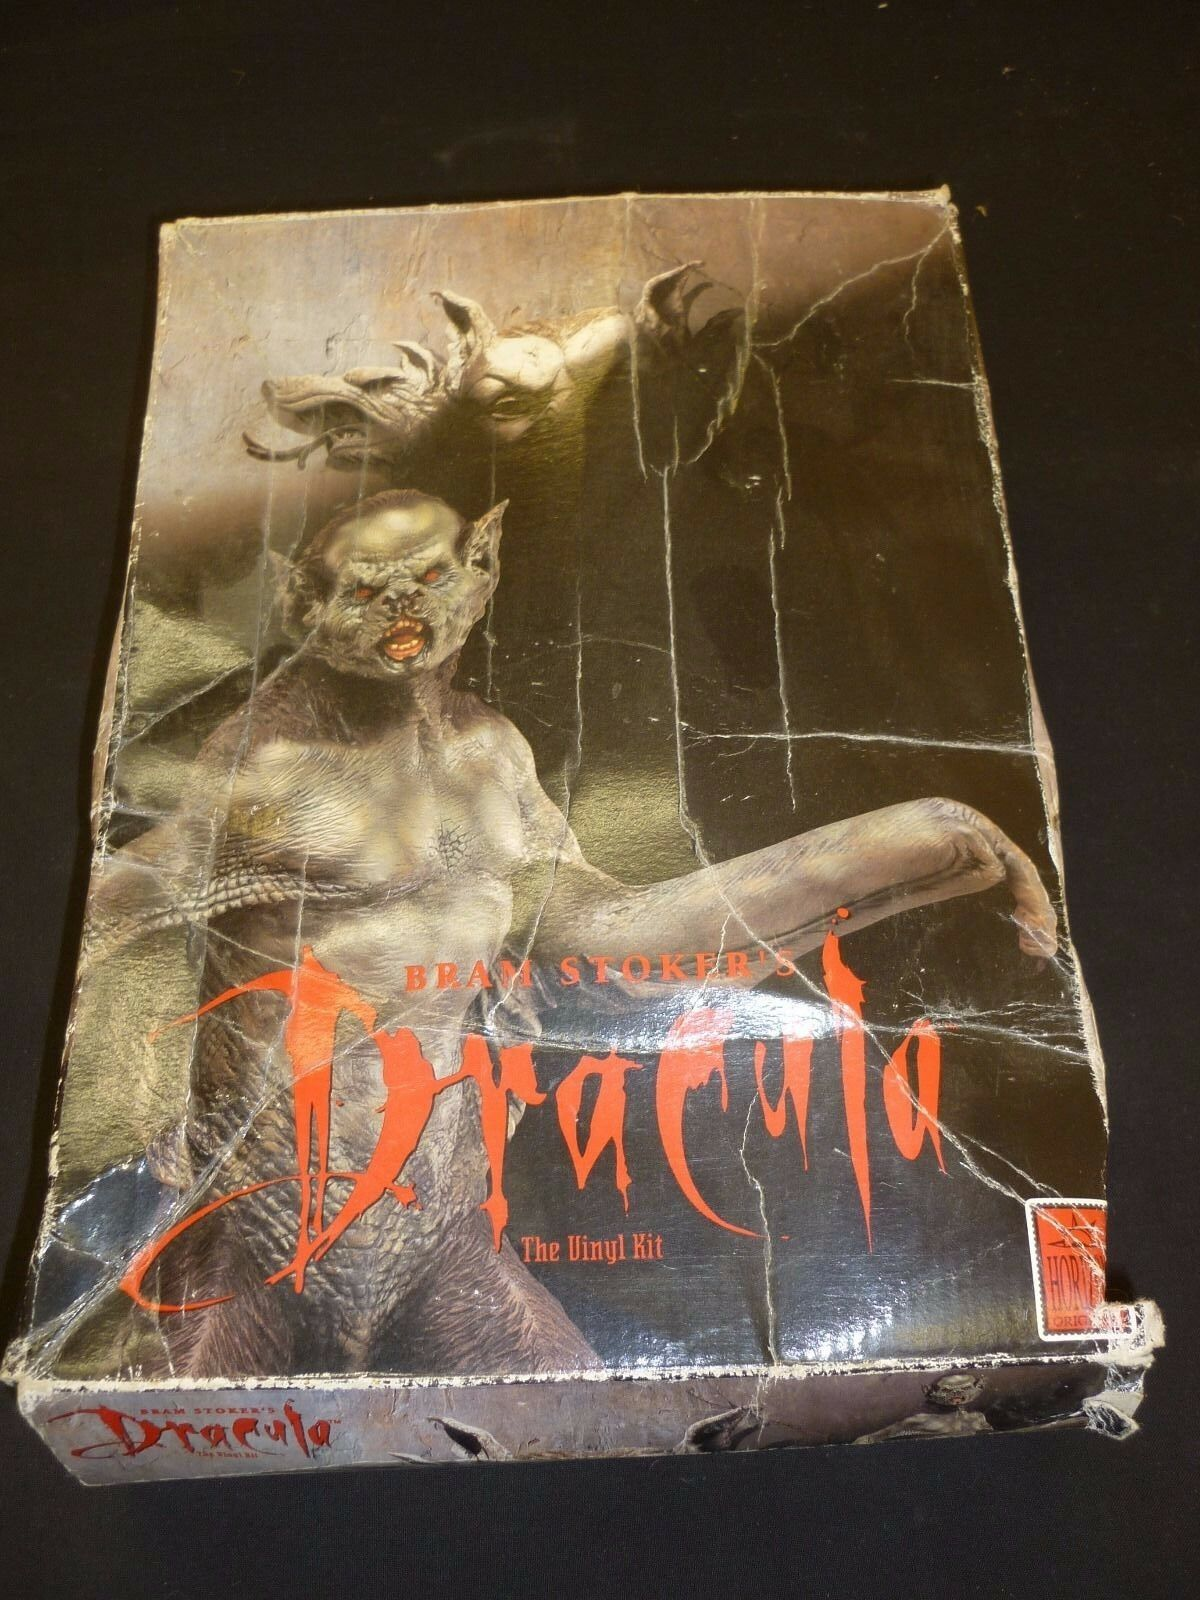 A Horizon vinyl kit of the Dracula Bat version, bulit    boxed